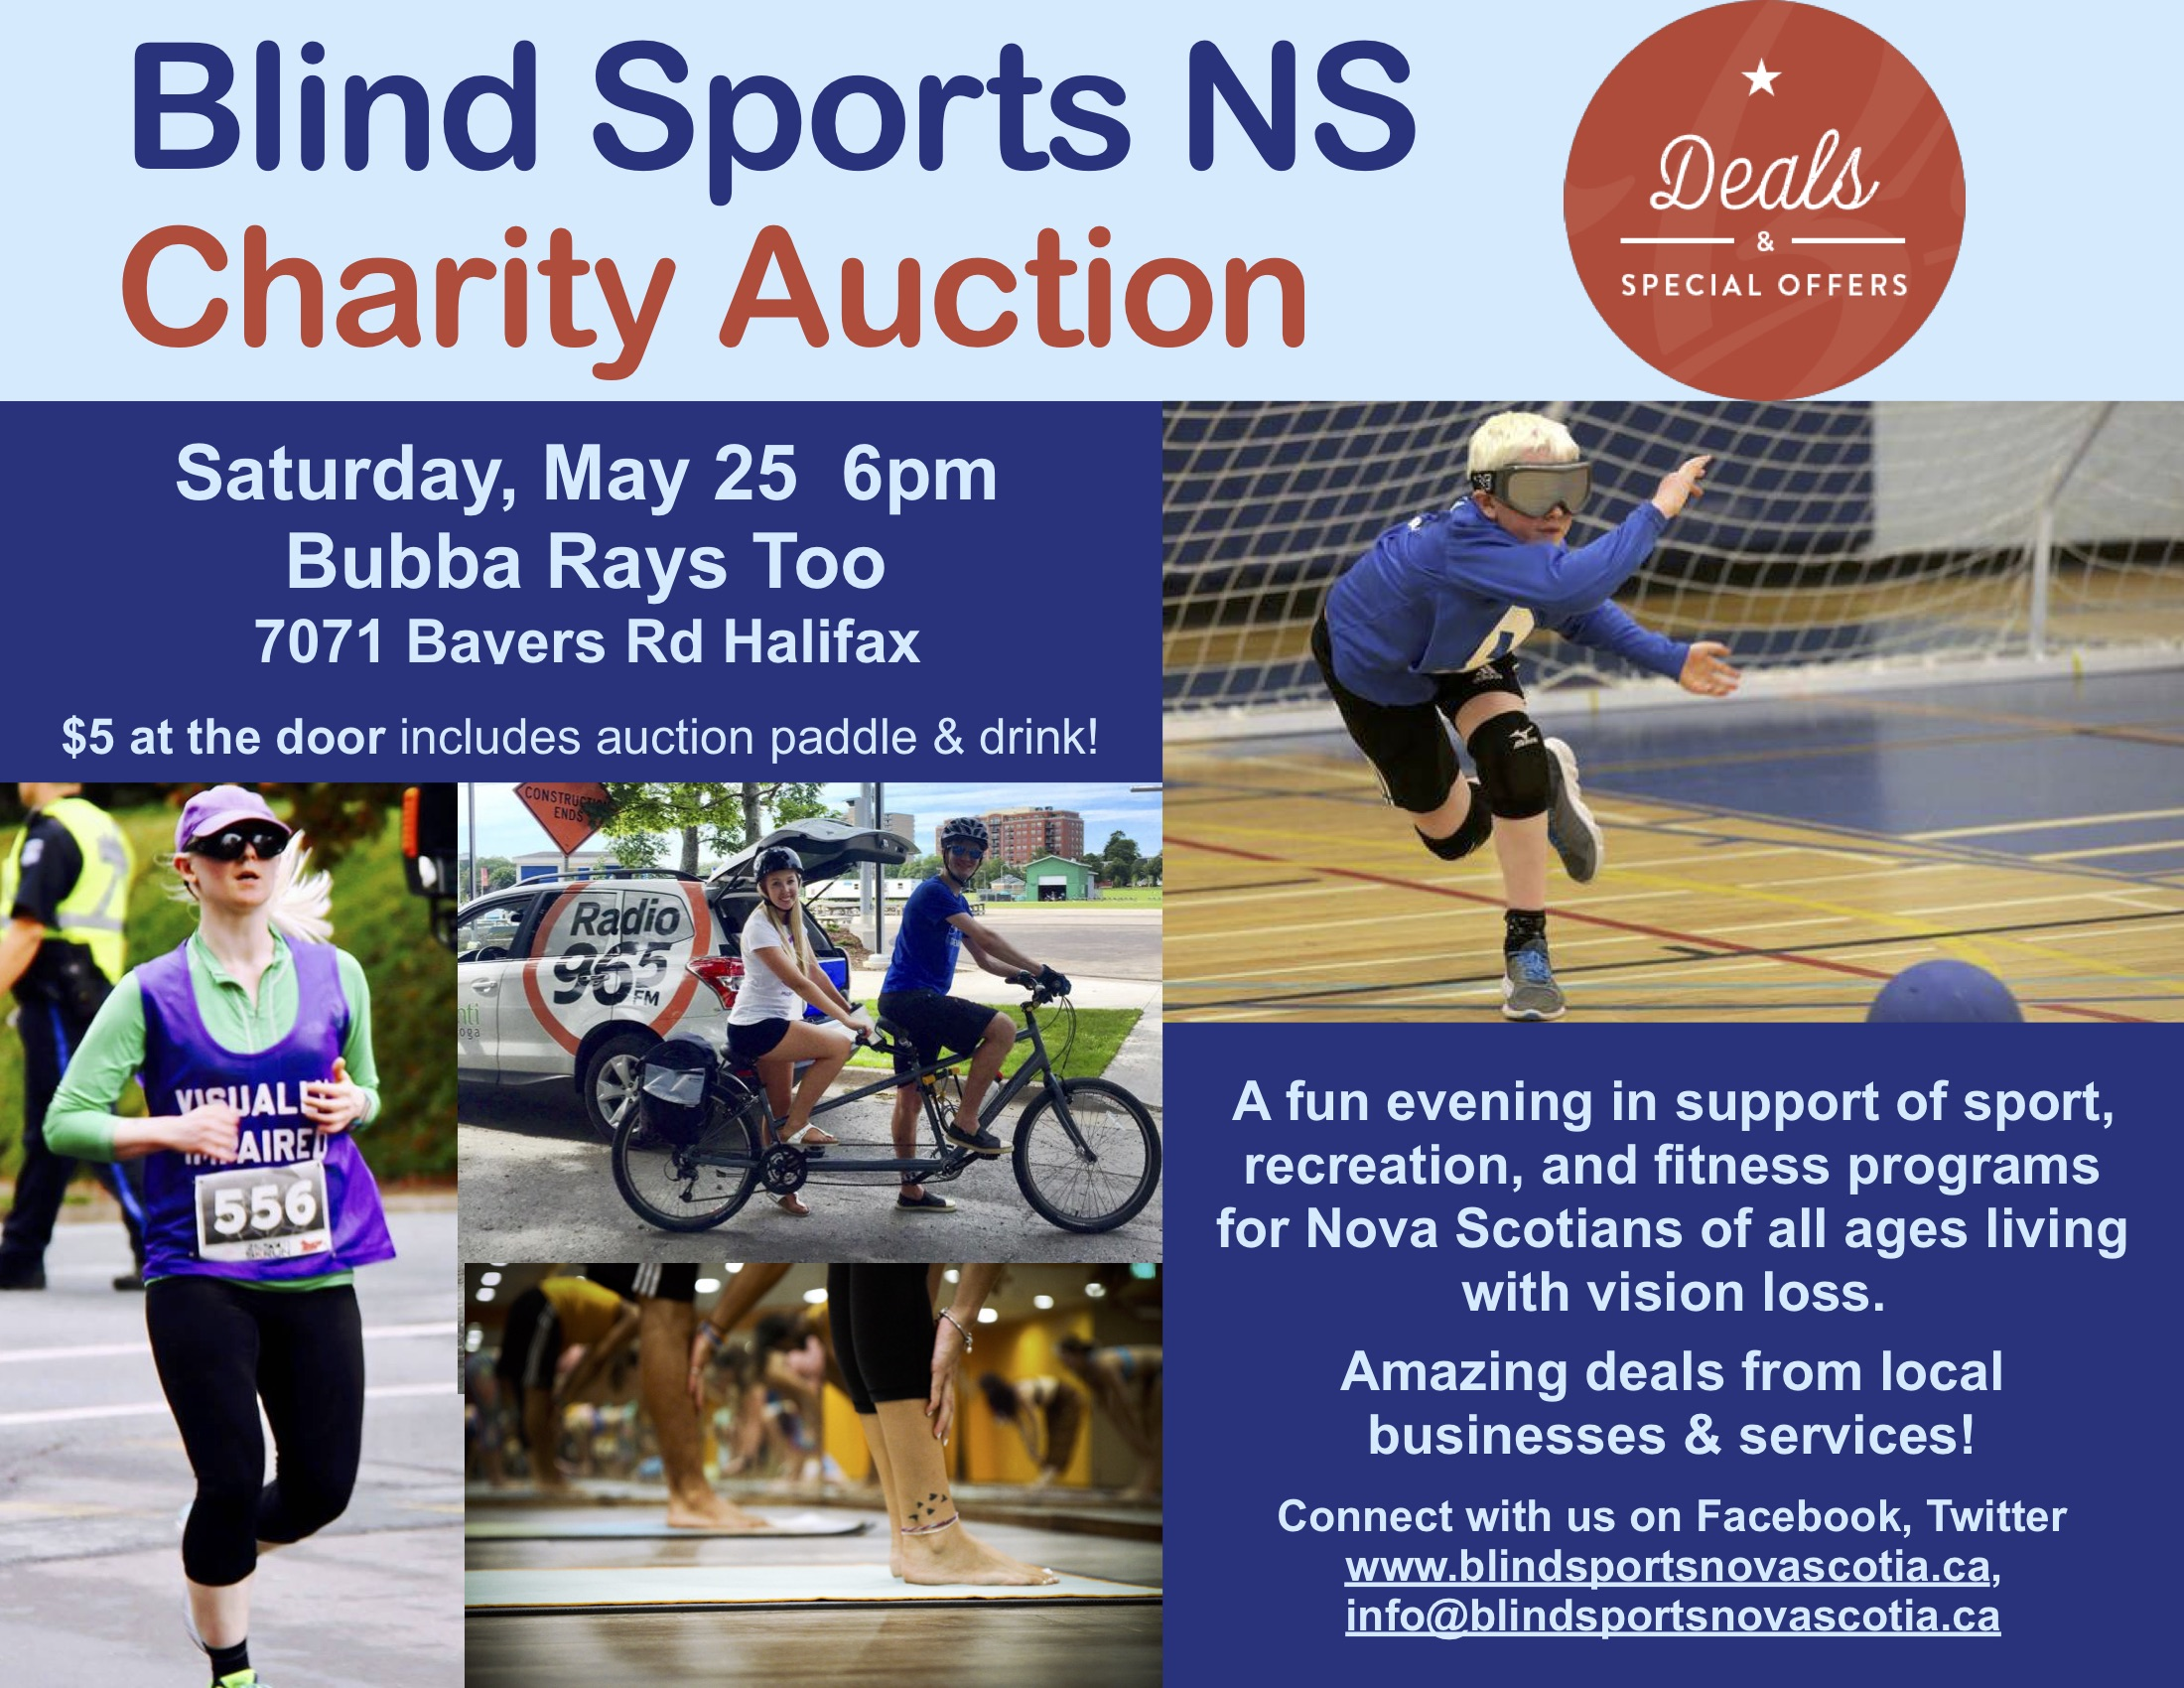 "Pictured on the poster are: ""Deals & special offers"". A blonde woman running in a vest that reads ""visually impaired"", a pair on a tandem bike outdoors, a young goal ball player in eyeshades, and a group of ankles & feet in a fog class.  Blind Sports NS Charity Auction Saturday, May 25 6pm Bubba Rays Too 7071 Bayers Rd Halifax $5 at the door includes auction paddle & drink! A fun evening in support of sport, recreation, and fitness programs for Nova Scotians of all ages living with vision loss. Amazing deals from local businesses & services! Connect with us on Facebook, Twitter www.blindsportsnovascotia.ca, info@blindsportsnovascotia.ca"